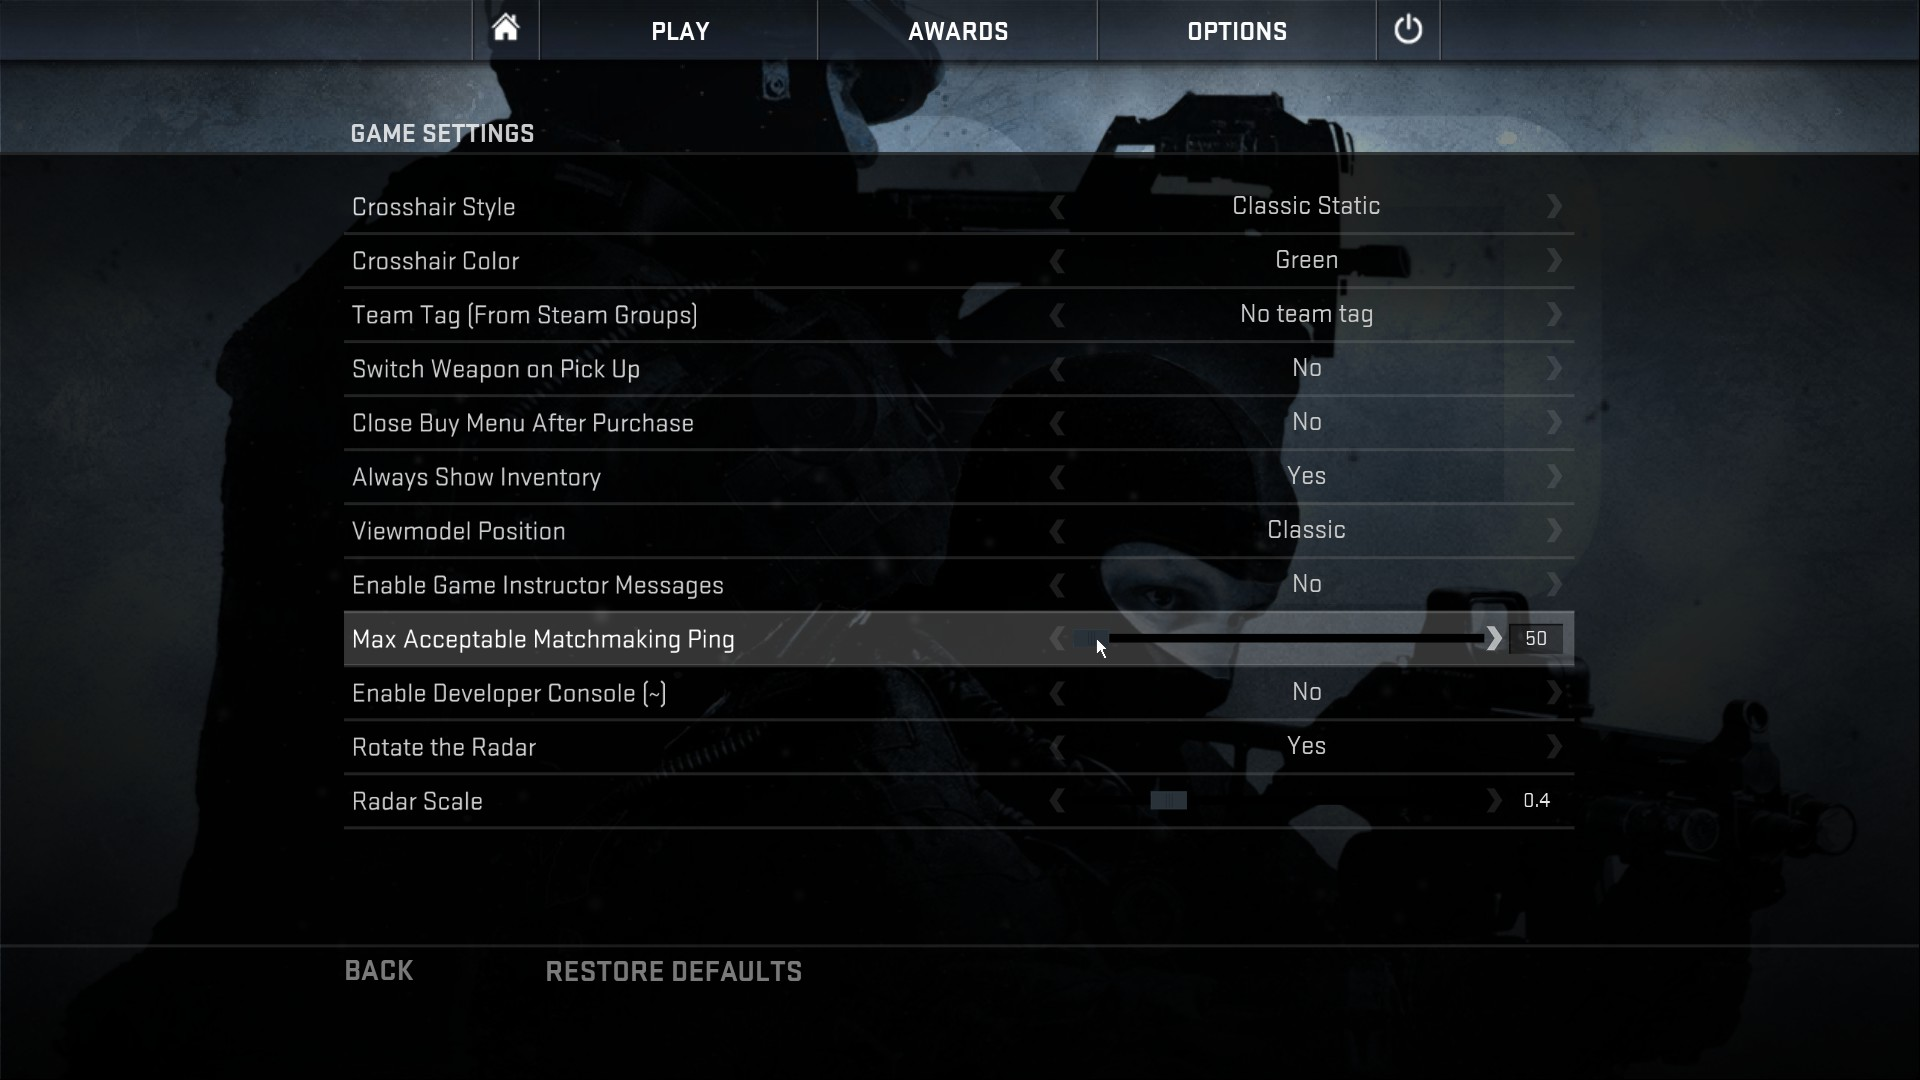 Max acceptable matchmaking ping cs go command